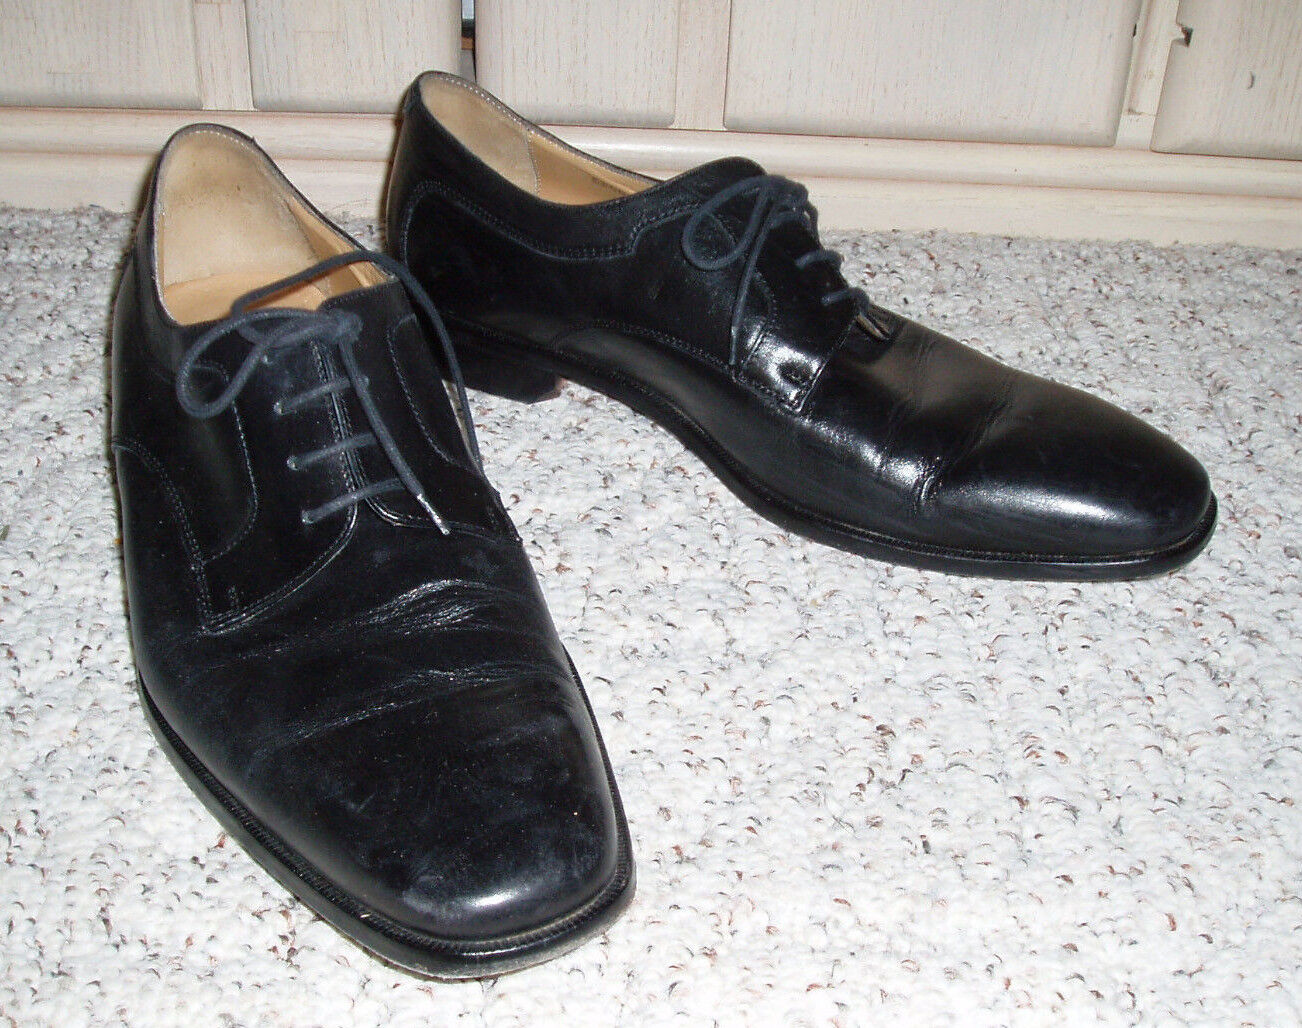 Men's MERCANTI FIORENTINI Genuine Leather Oxford Dress shoesBlack10.5 M